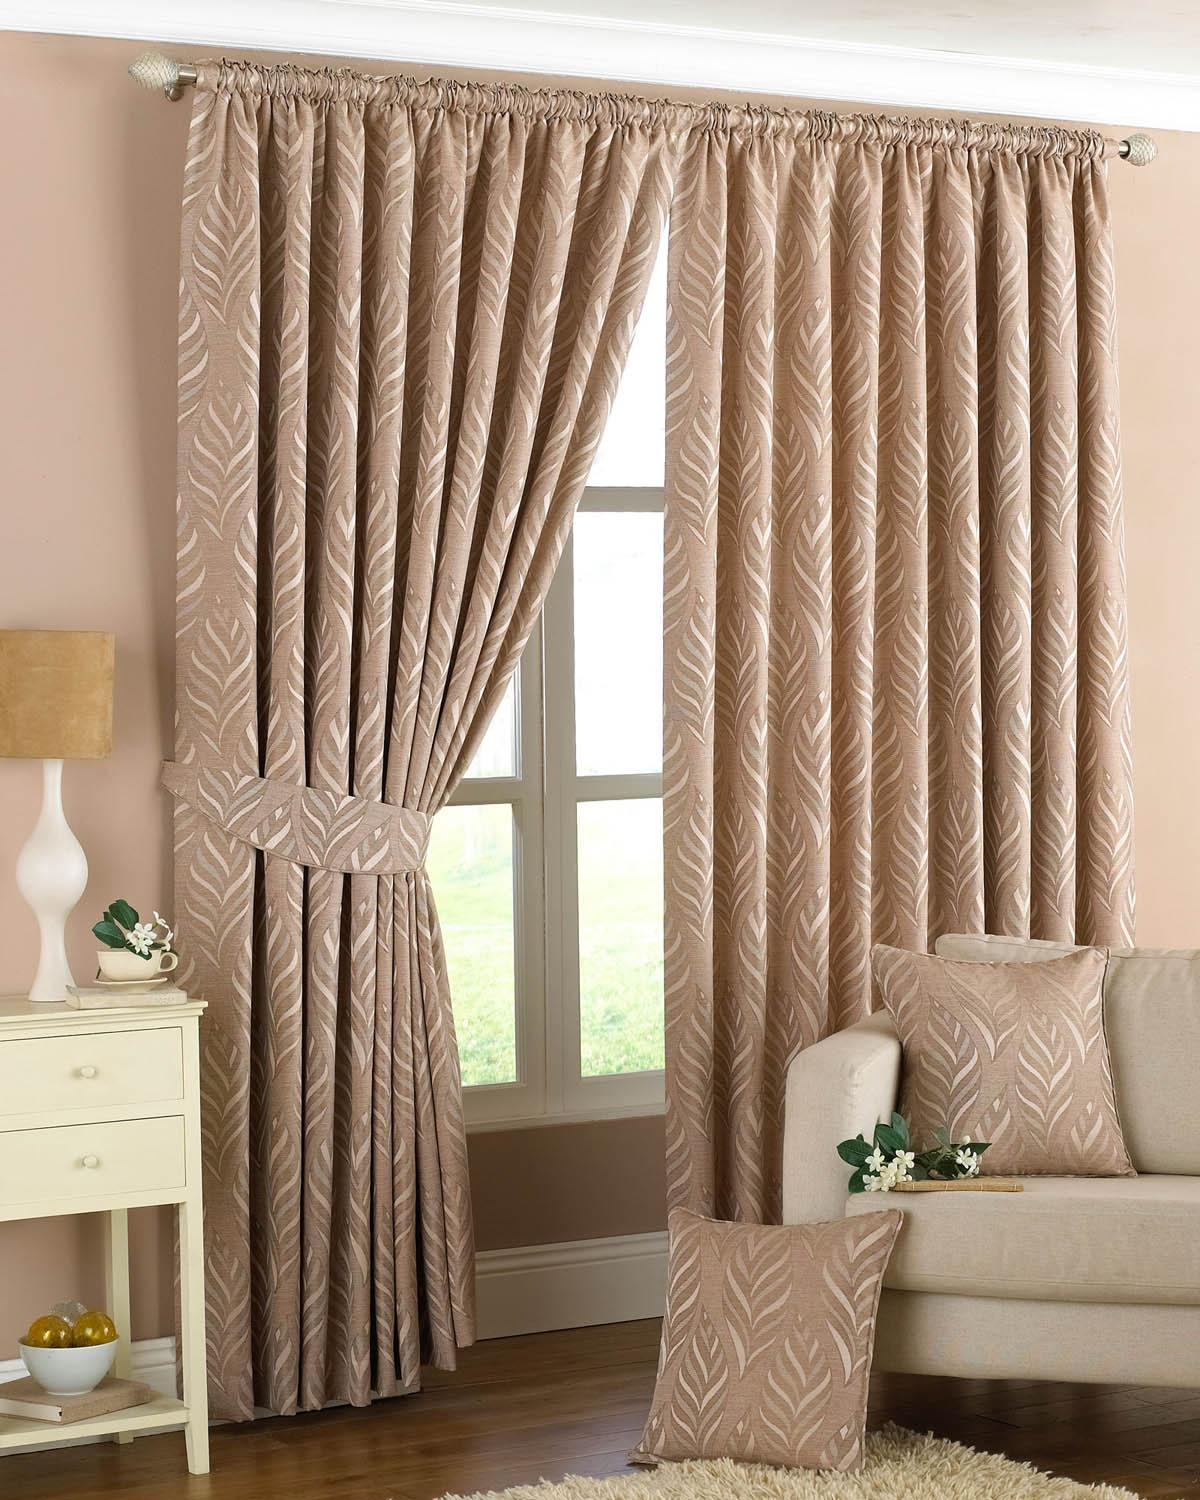 Stockists of Natural Narrow Leaf Ready Made Lined Curtains